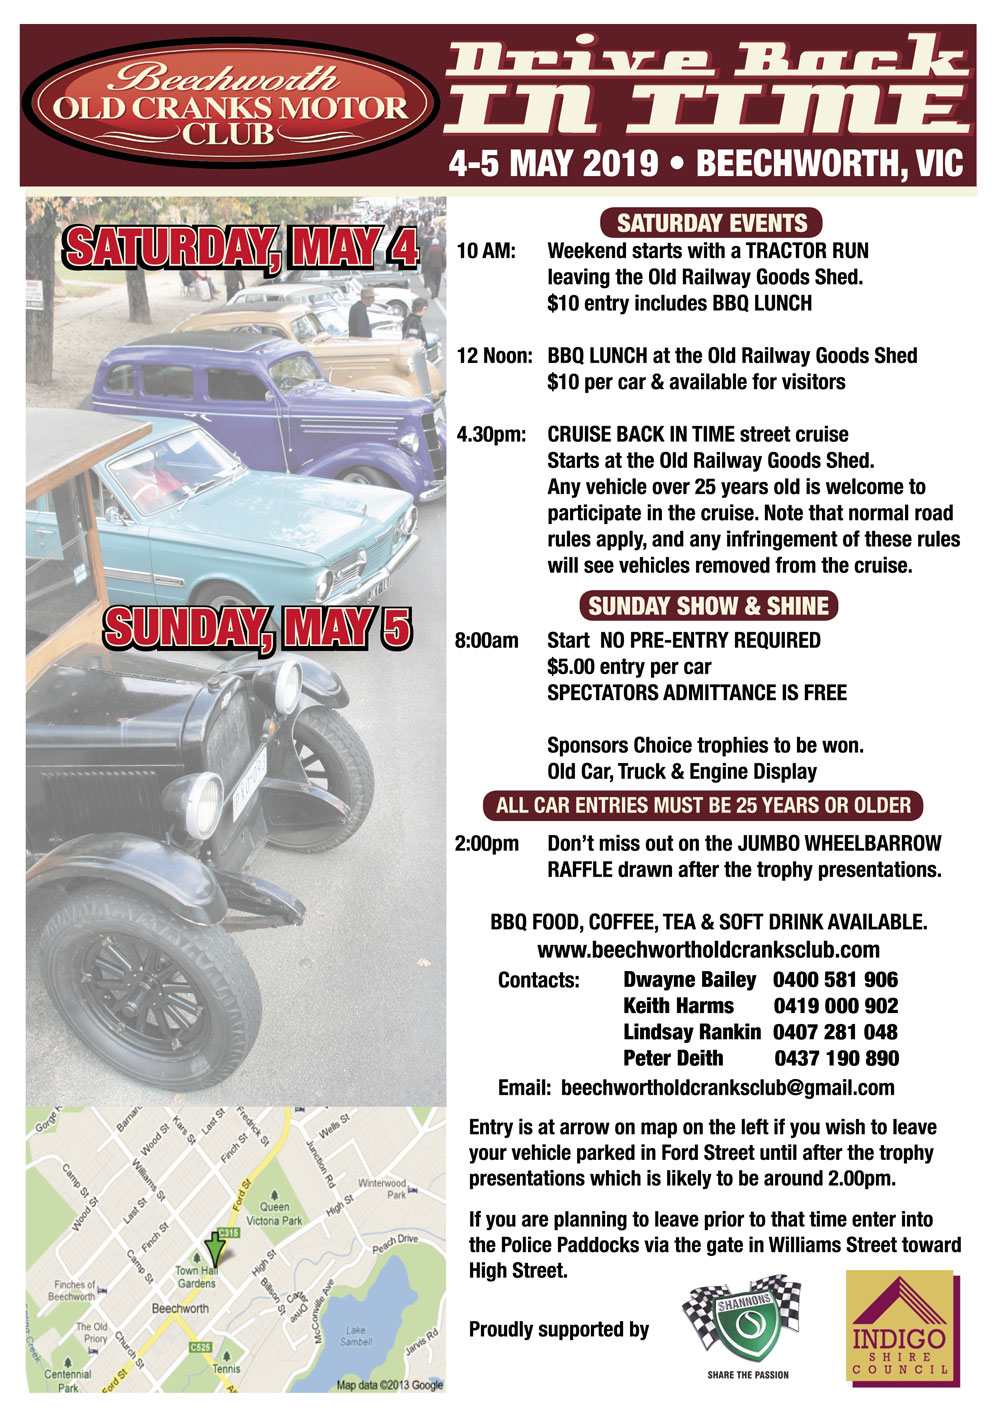 Beechworth-Drive-Back-in-Time-2019-Flyer.jpg